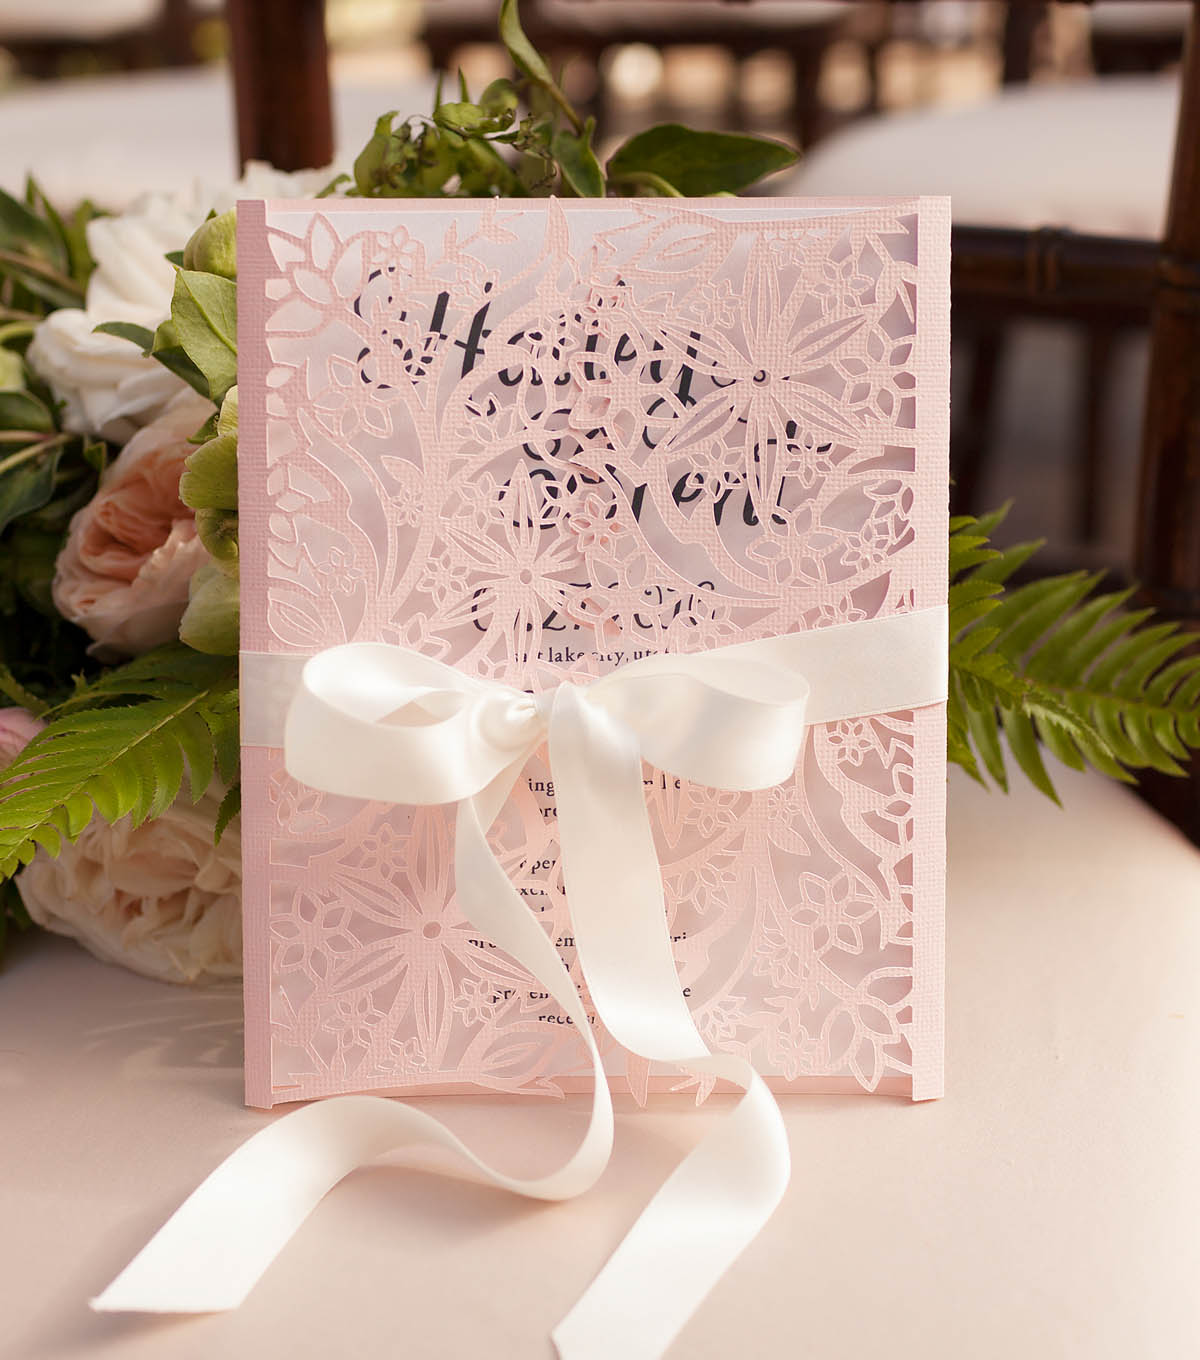 How To Make A Wedding Welcome Sign - Wedding Crafts | JOANN